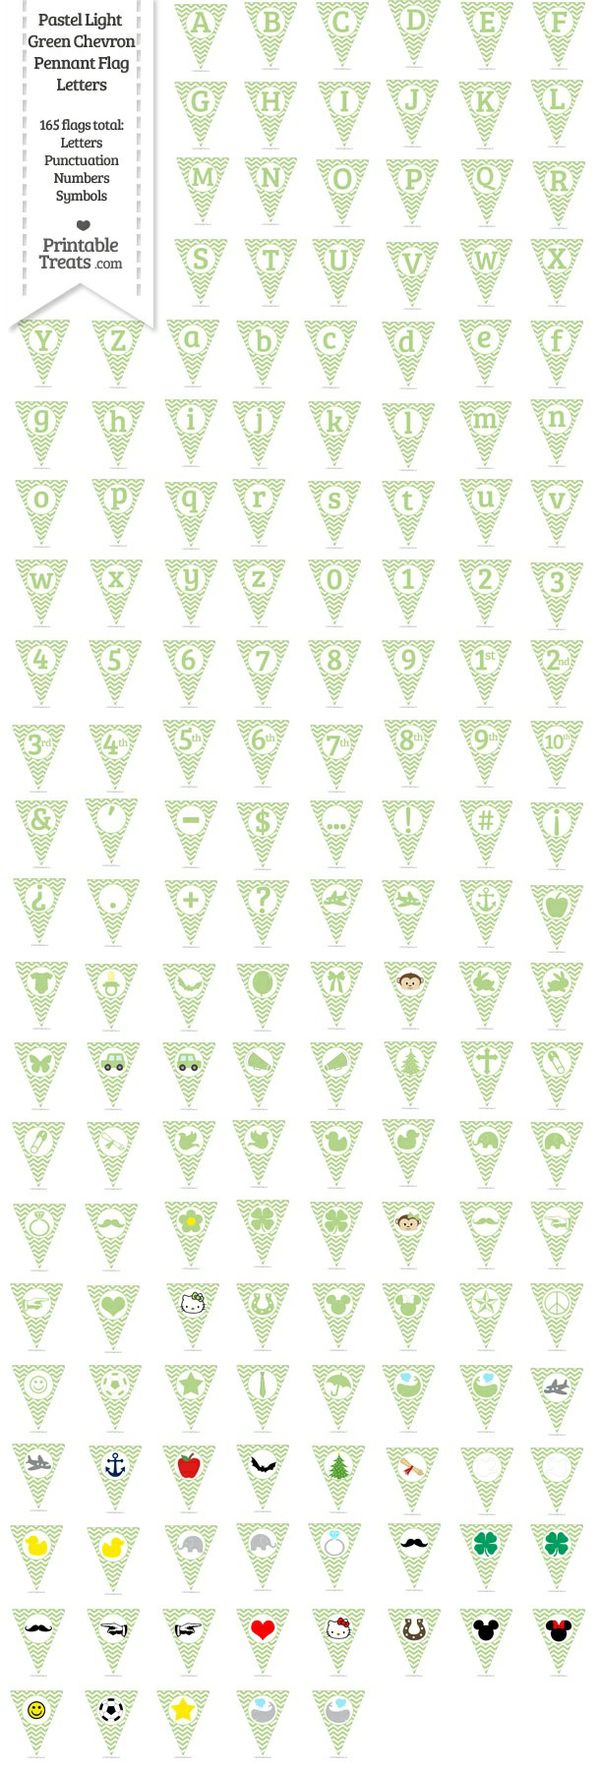 165 Pastel Light Green Chevron Pennant Flag Letters Password